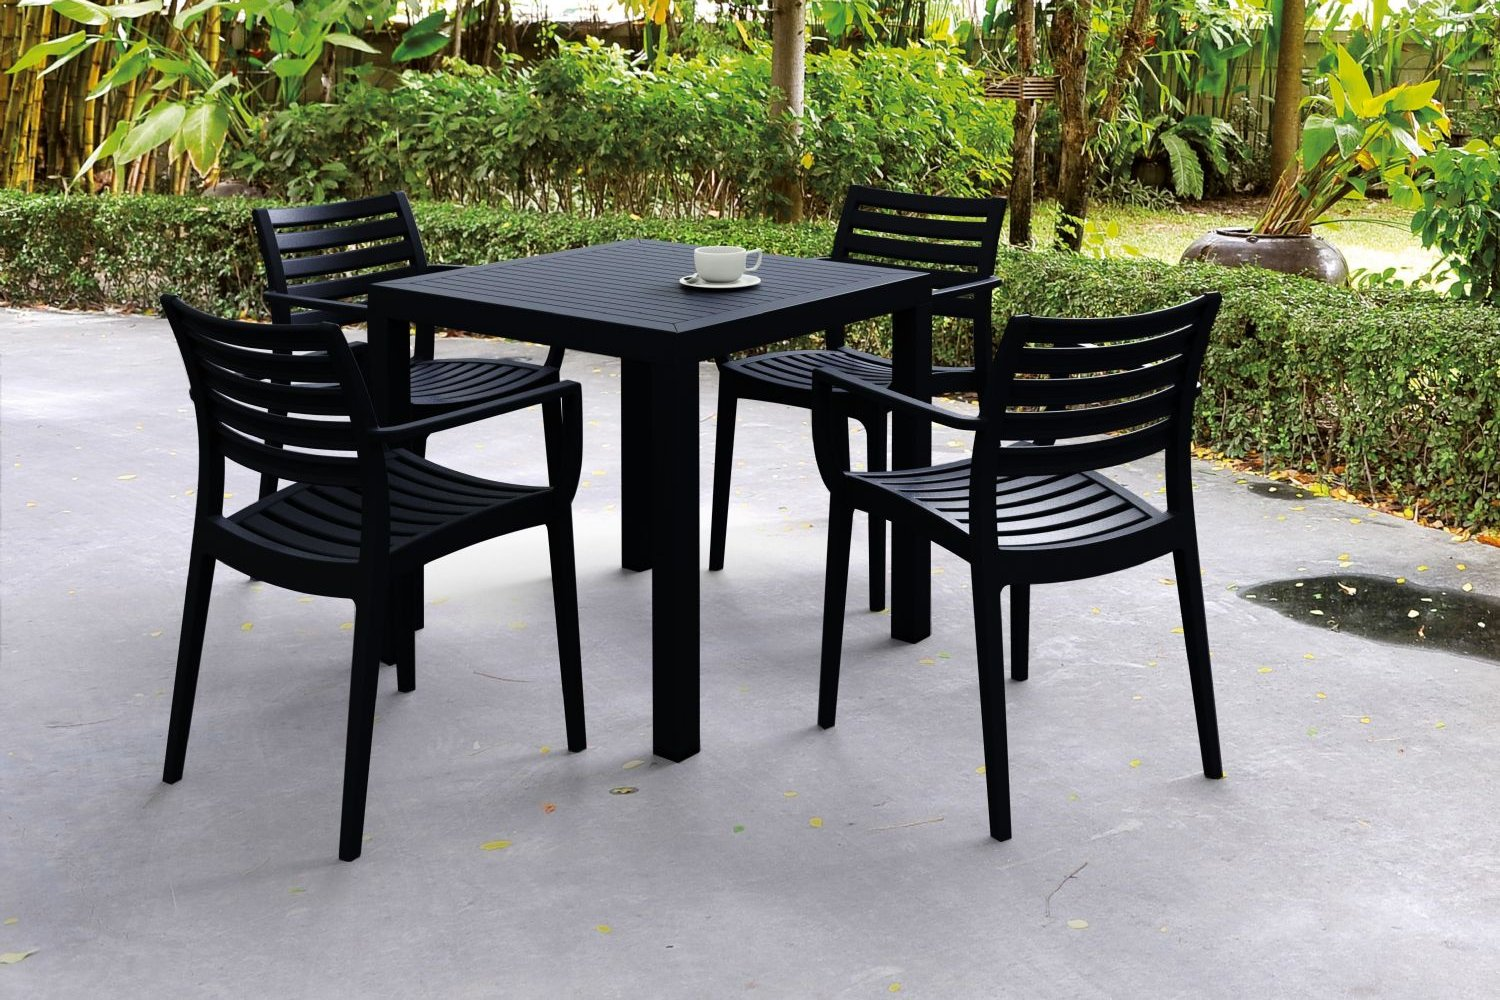 Artemis Resin Square Outdoor Dining Set 5 Piece with Arm Chairs ISP1642S - 1